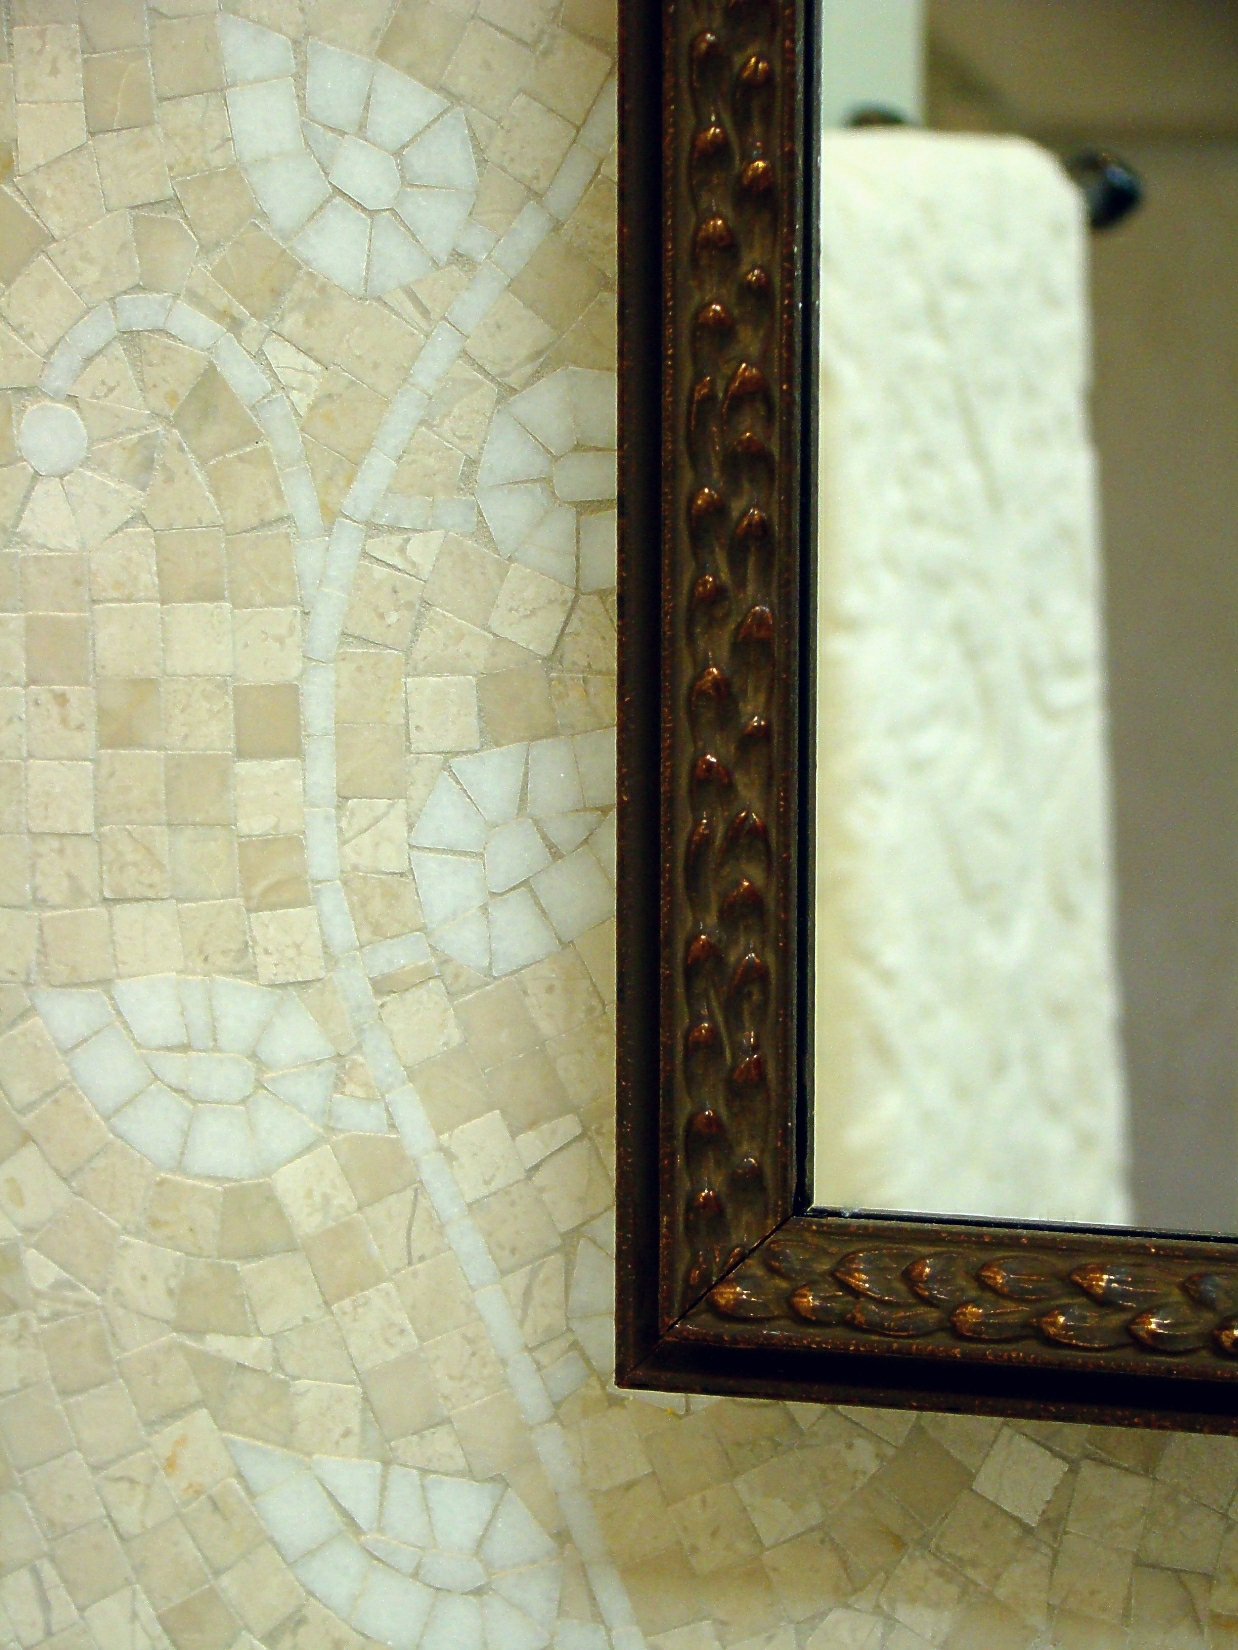 Fiorito Interior Design, interior design, remodel, master bathroom, mosaic tile, mirror frame, traditional